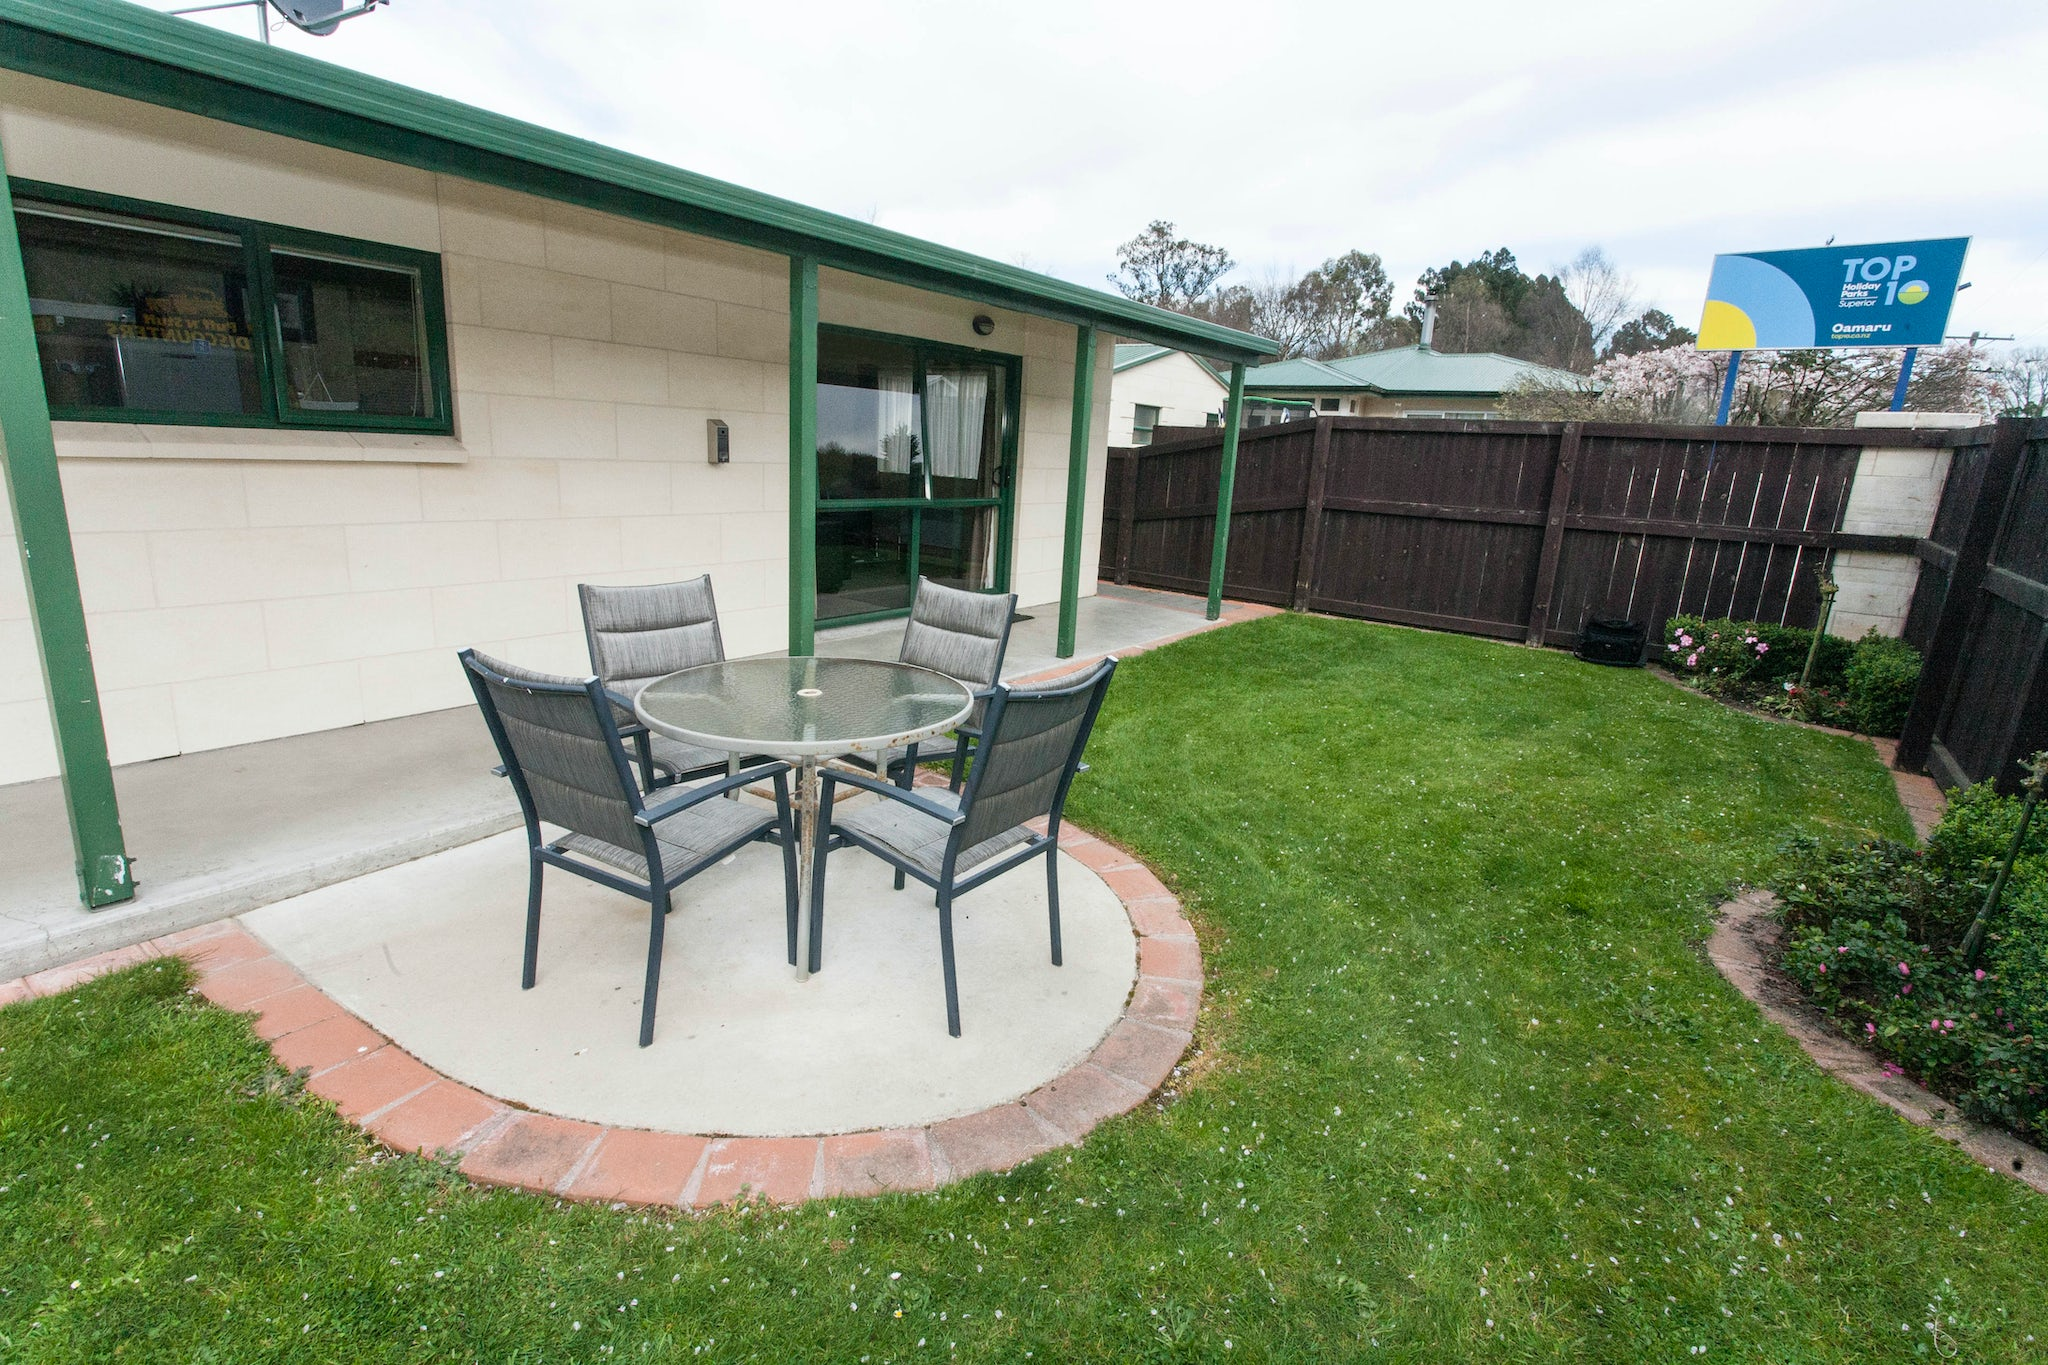 2 Bedroom Units Oamaru Top 10 Holiday Parks